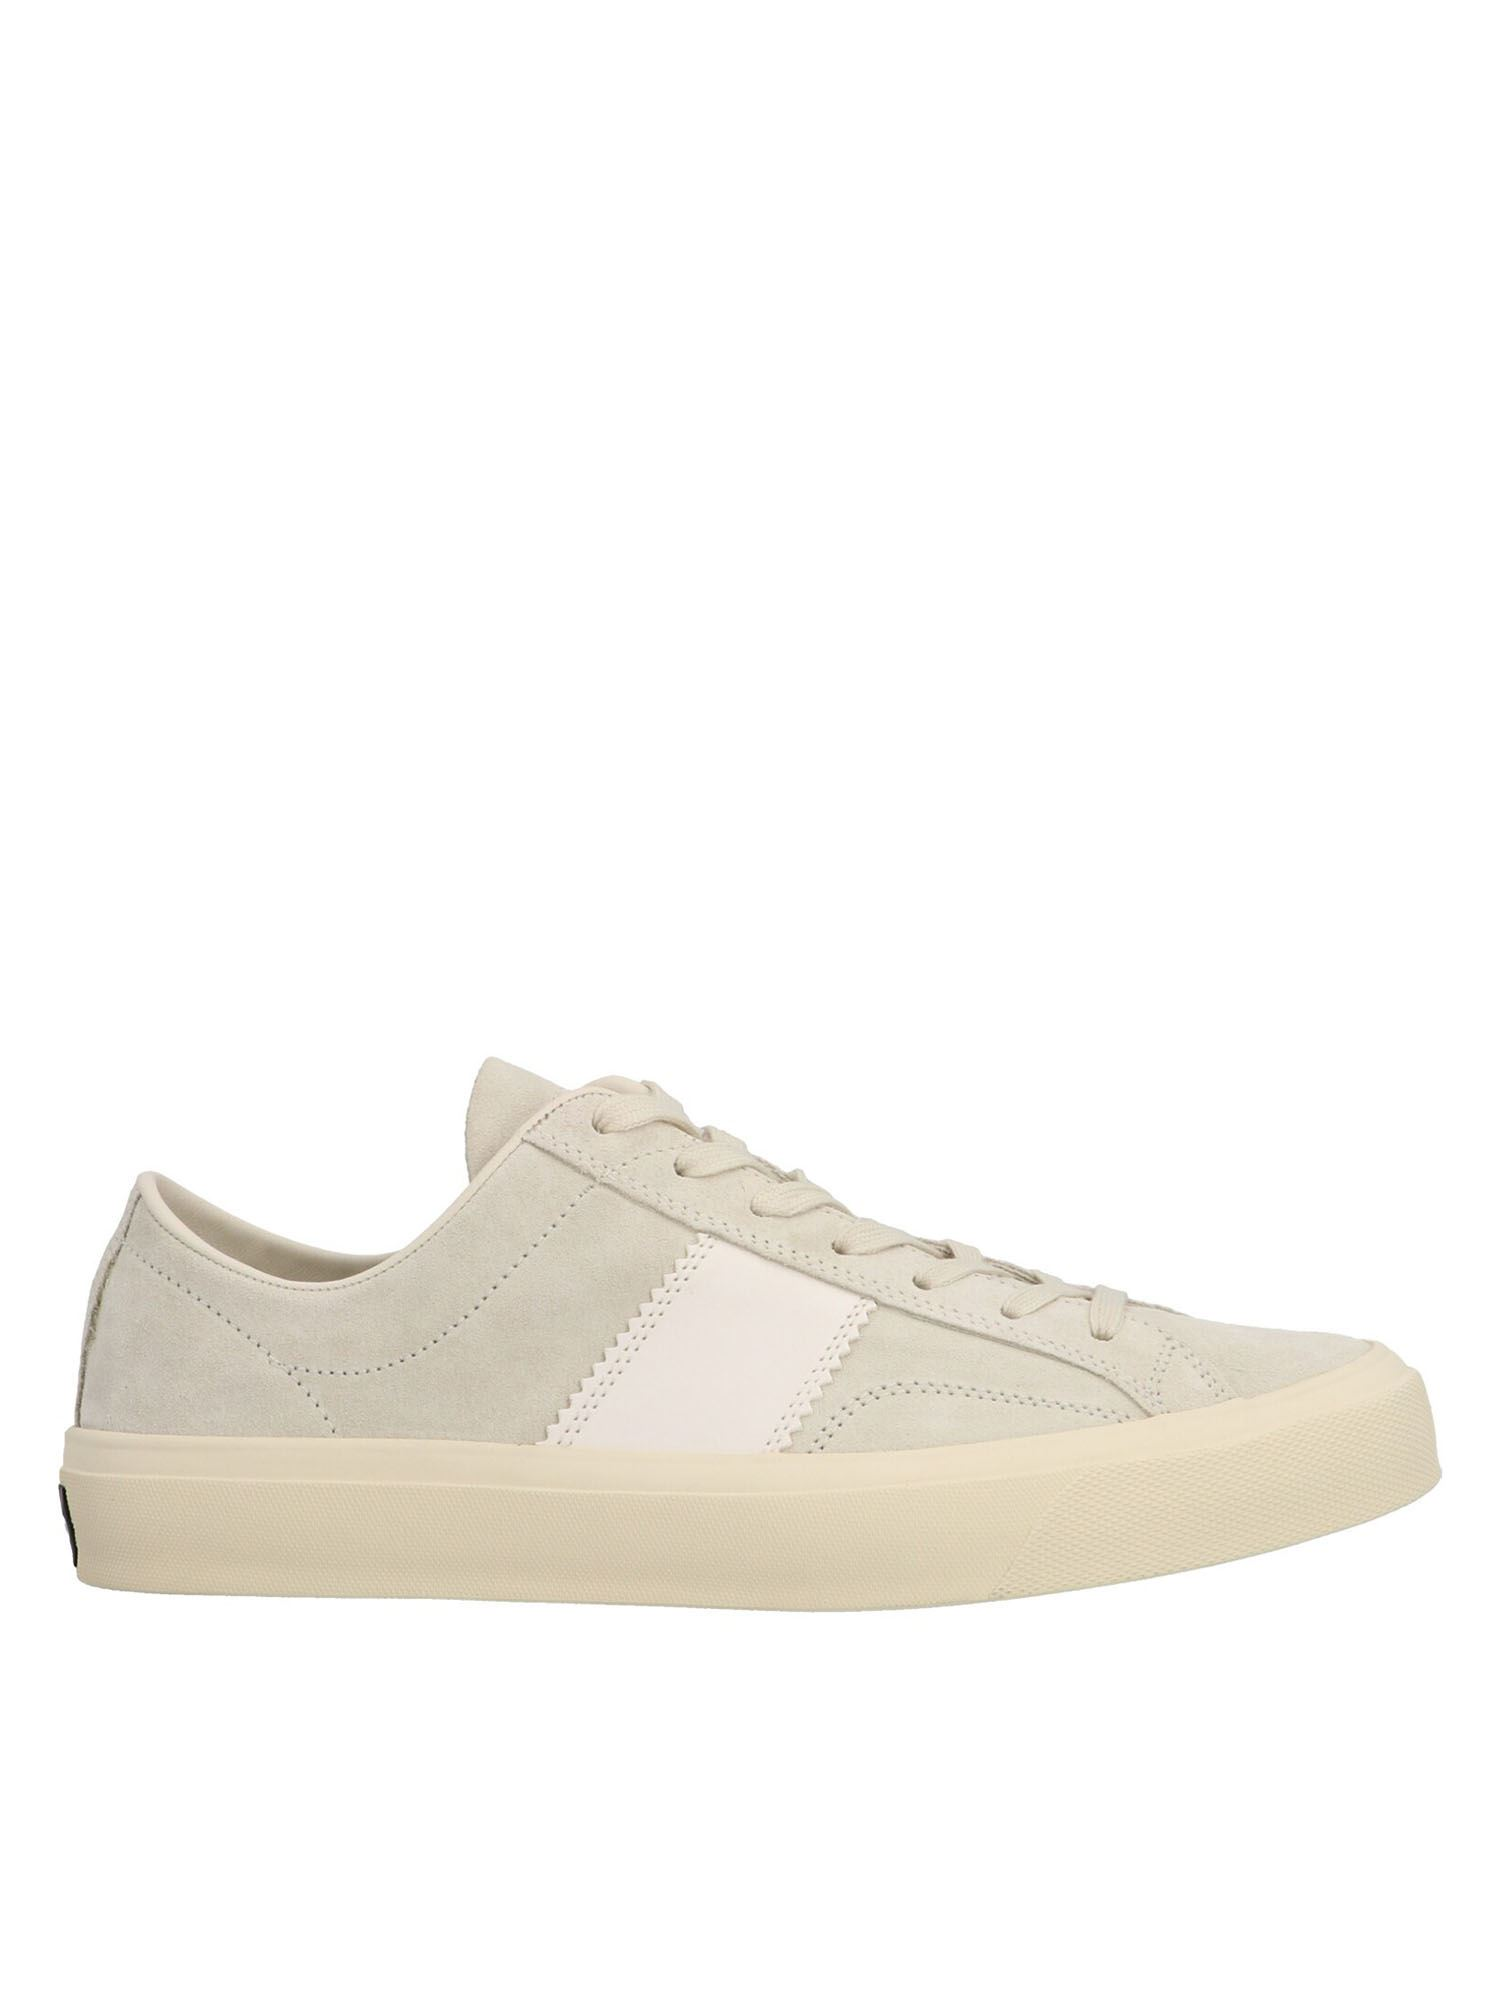 Tom Ford CAMBRIDGE SNEAKERS IN WHITE